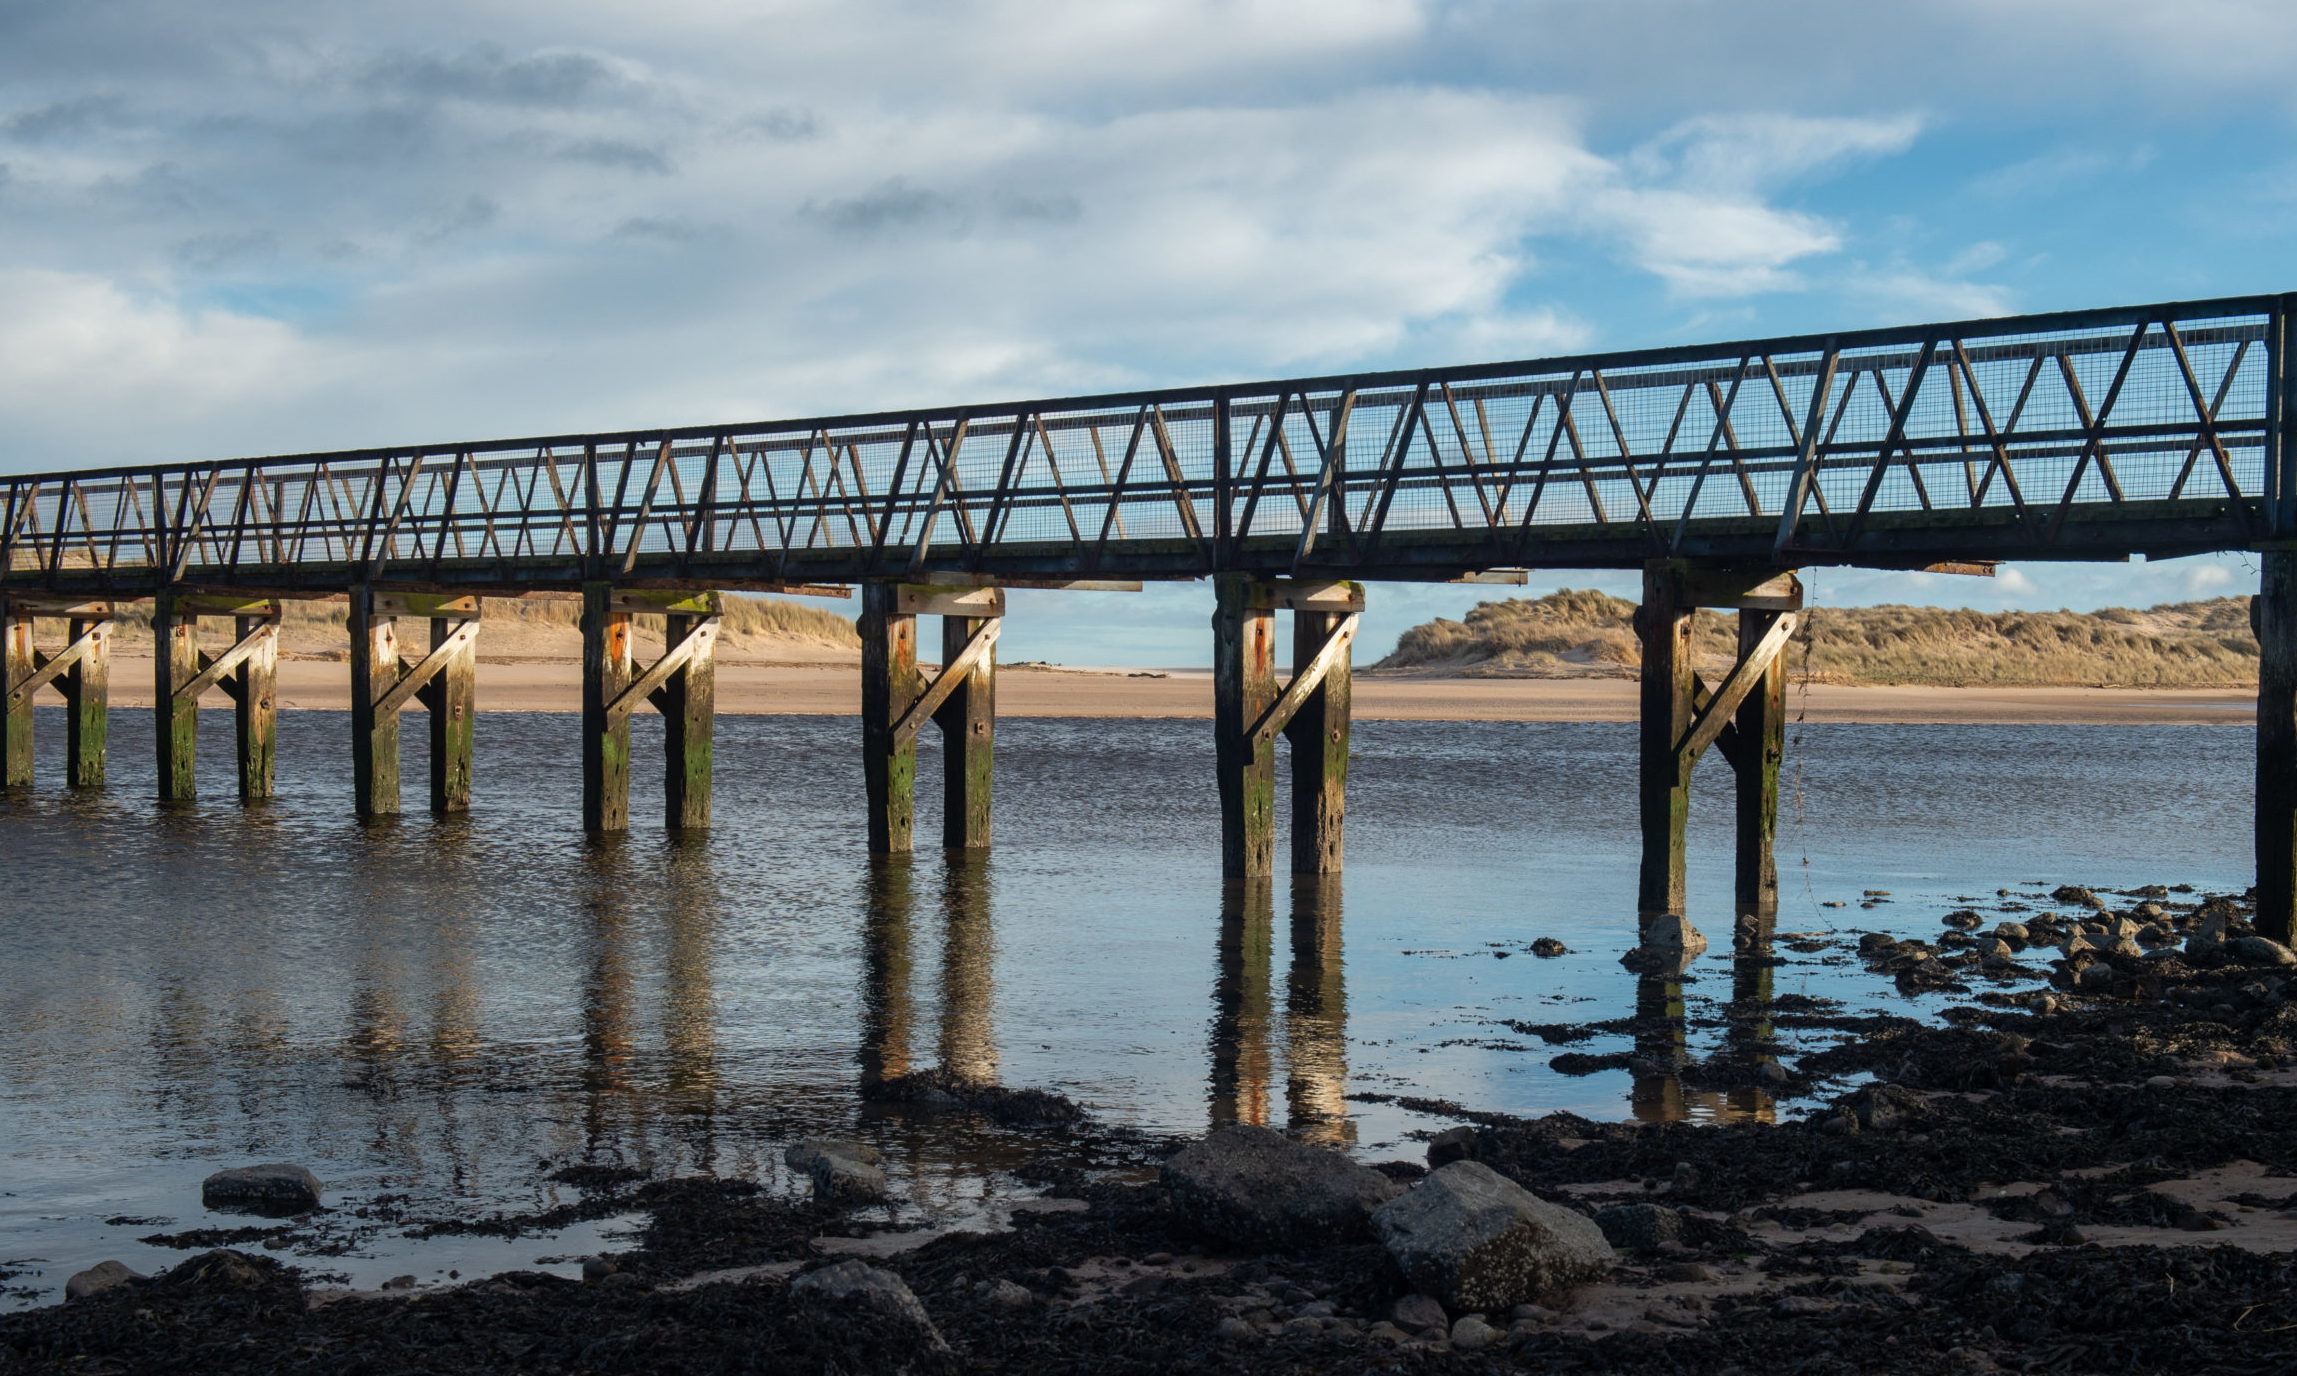 East Beach bridge in Lossiemouth. Picture by Jason Hedges.